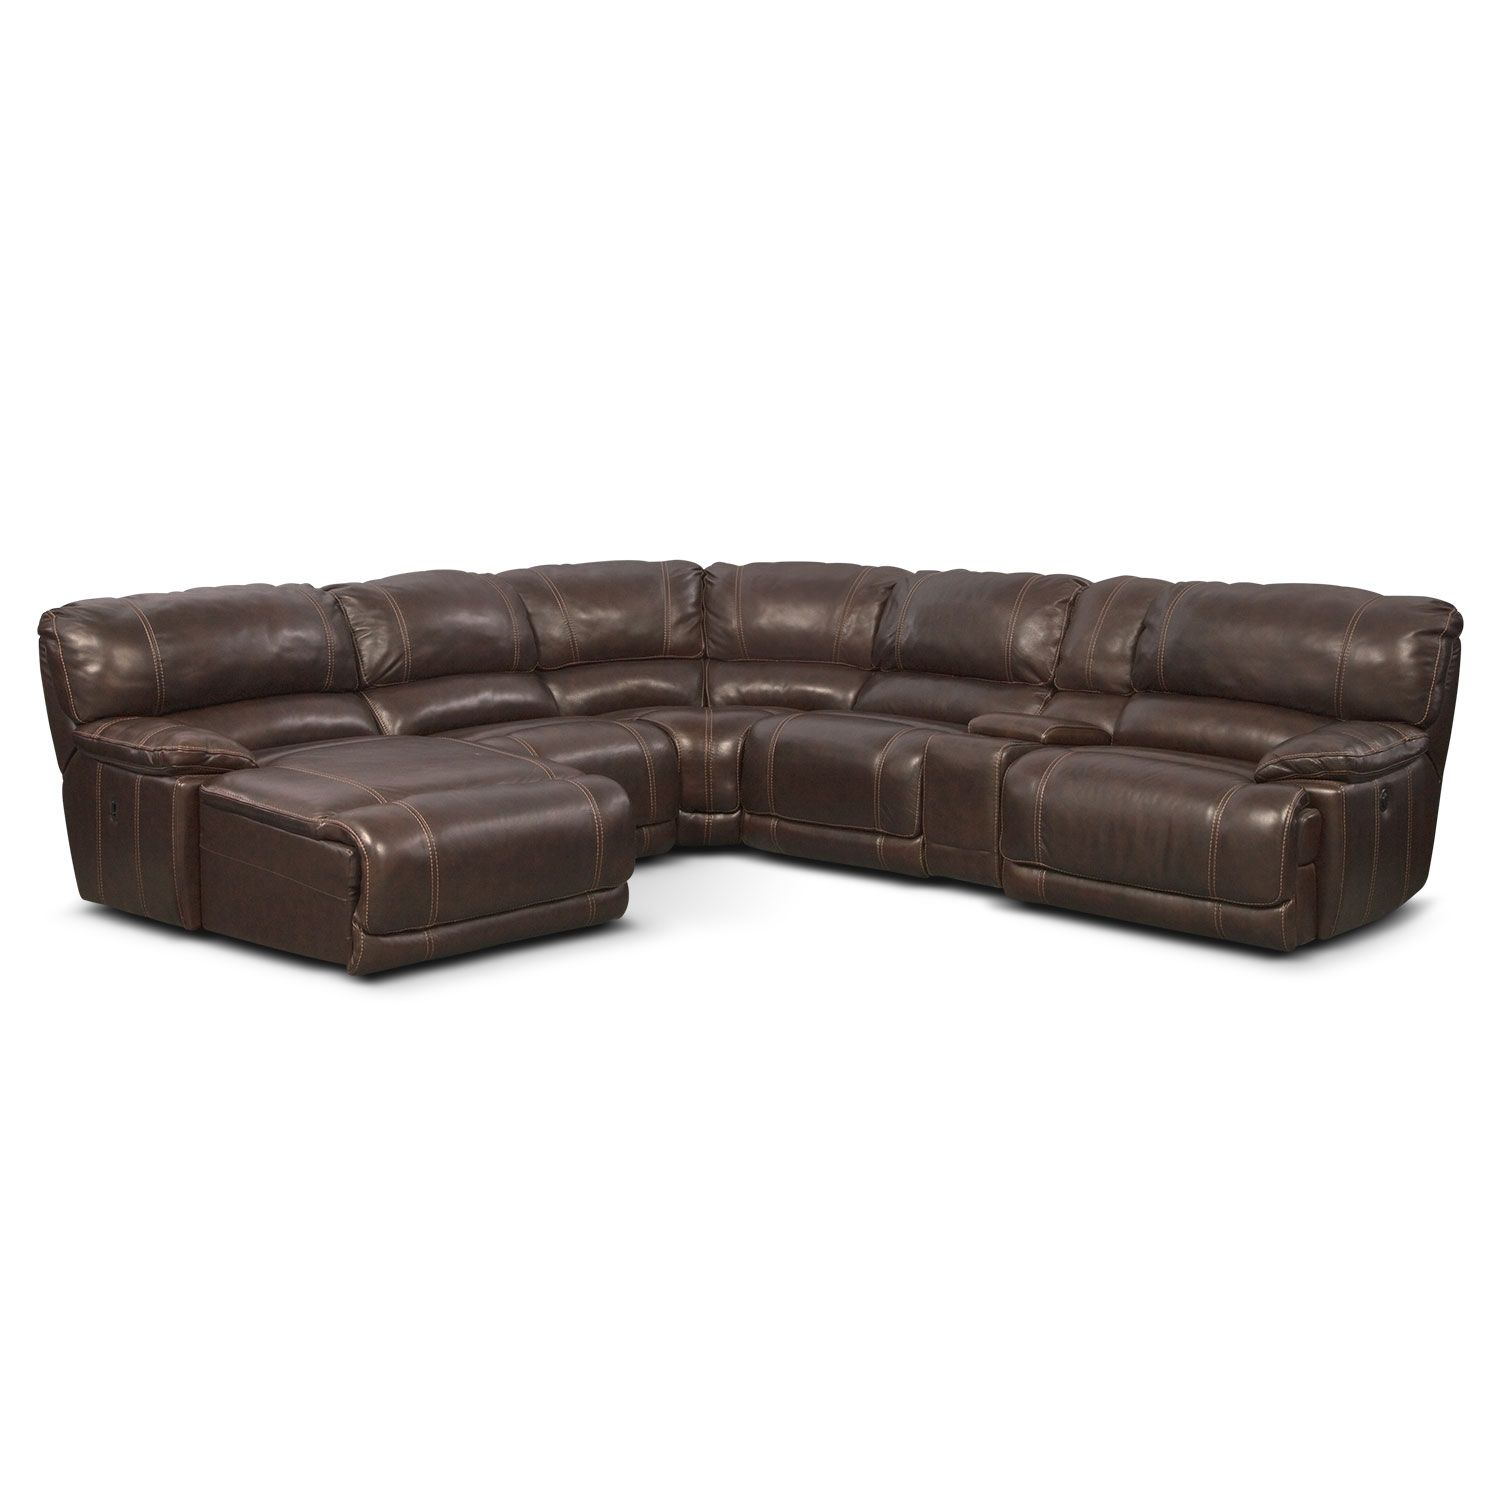 HTL Furniture 2678CS Reclining Leather Sectional Sofa den